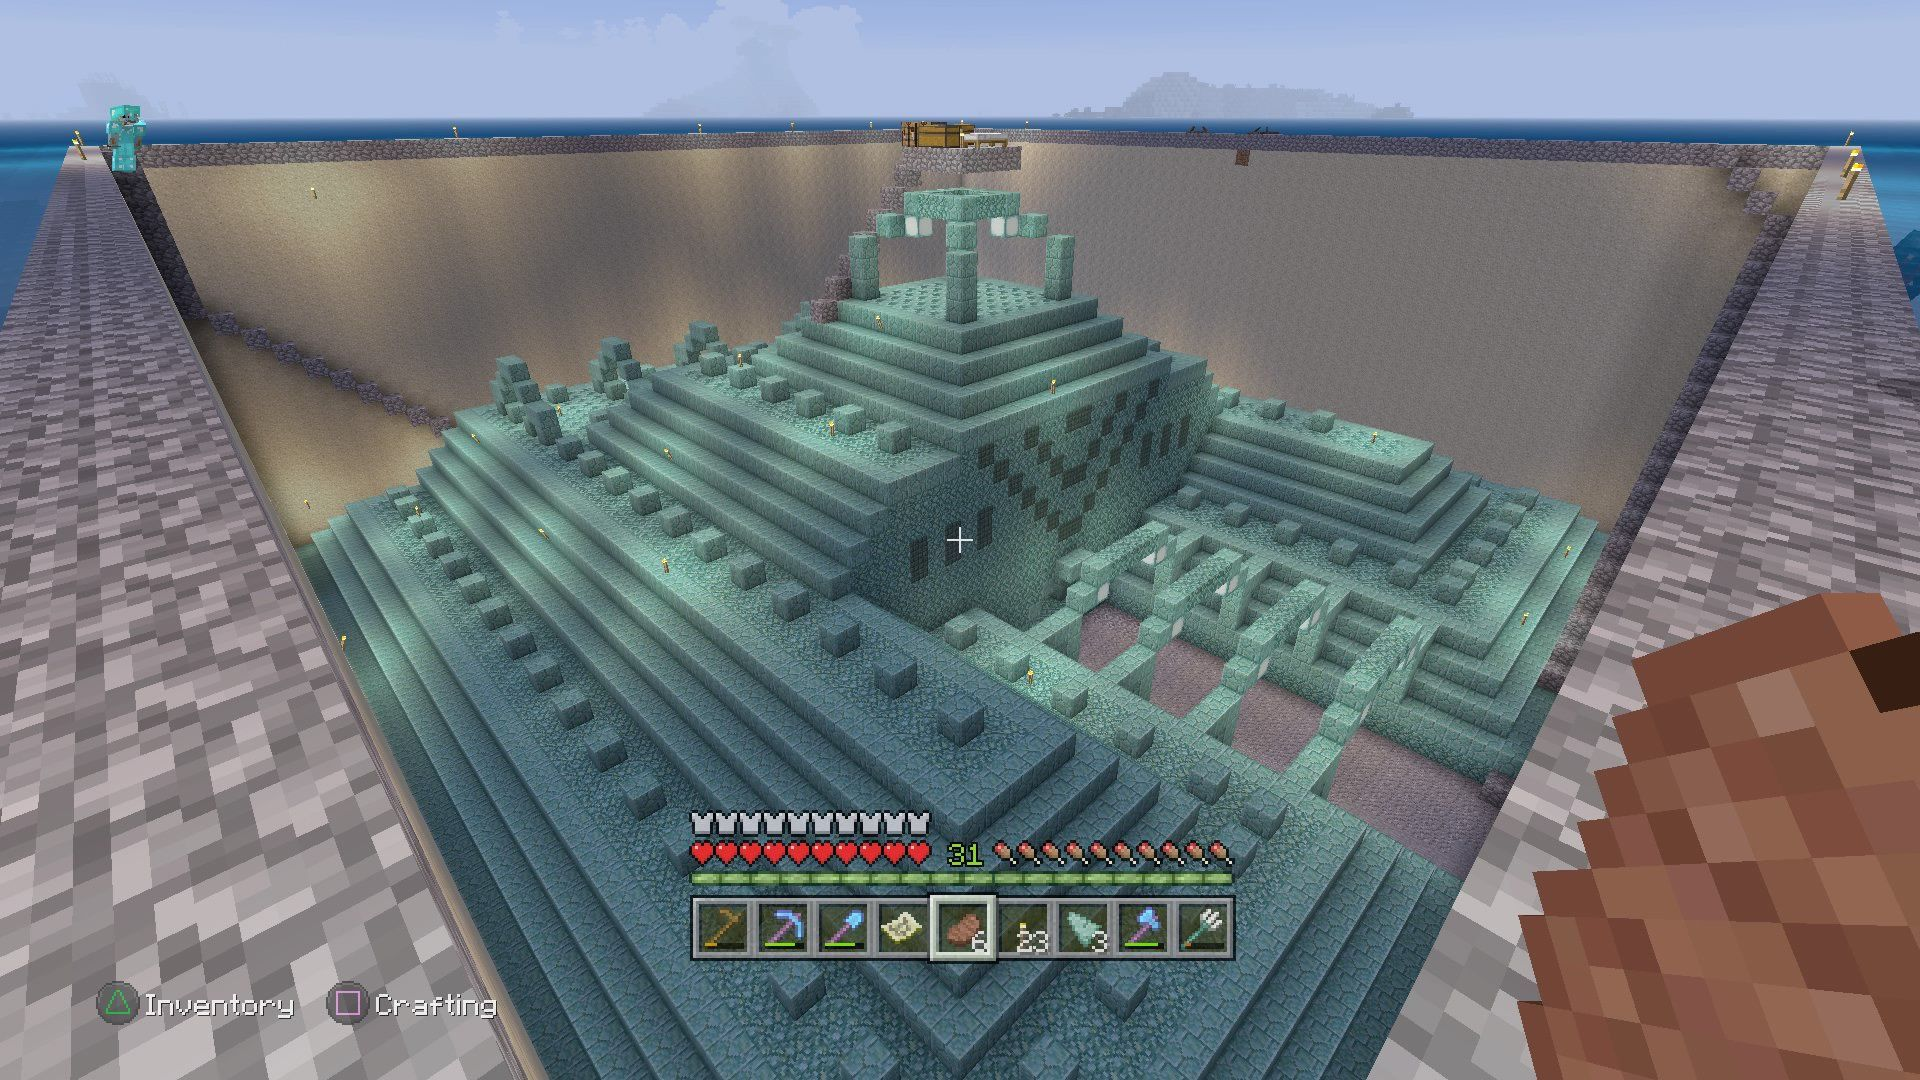 I took one of those underwater temples and thought it would be